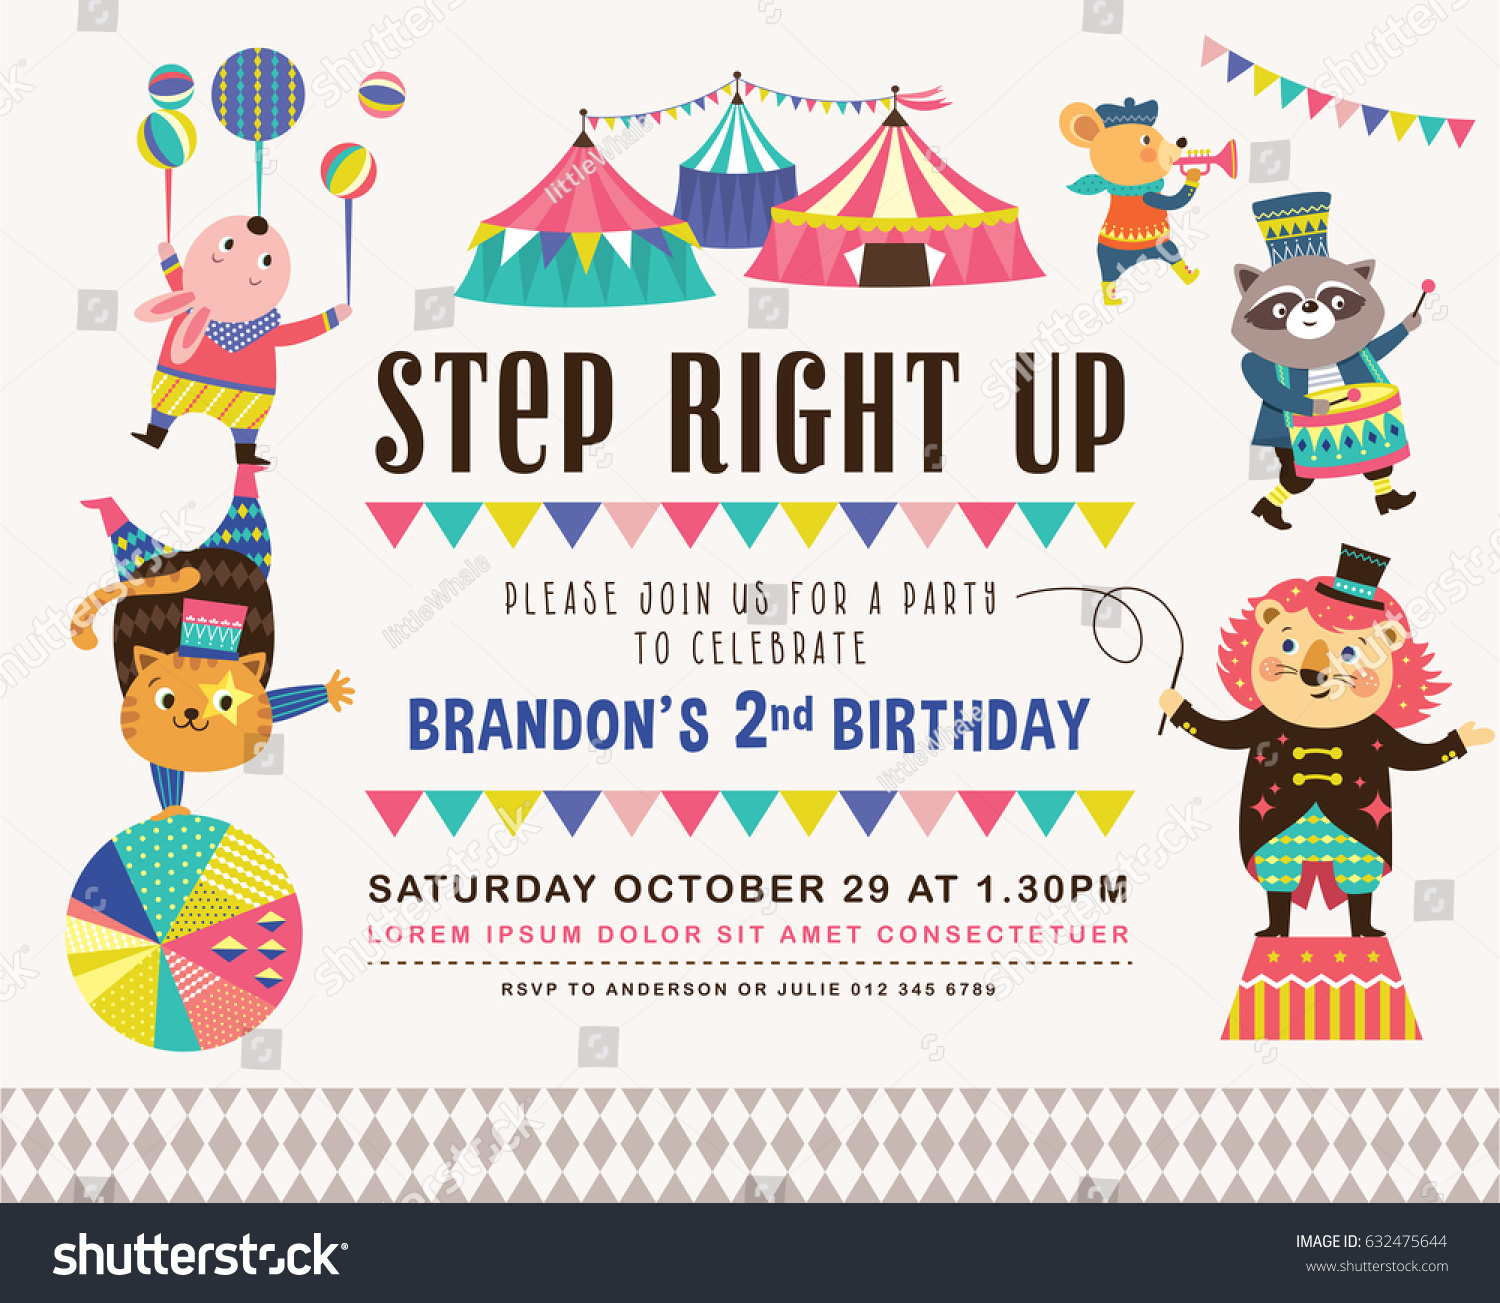 Kids Birthday Party Invitation Card Circus Stock Vector - Birthday invitation cards circus